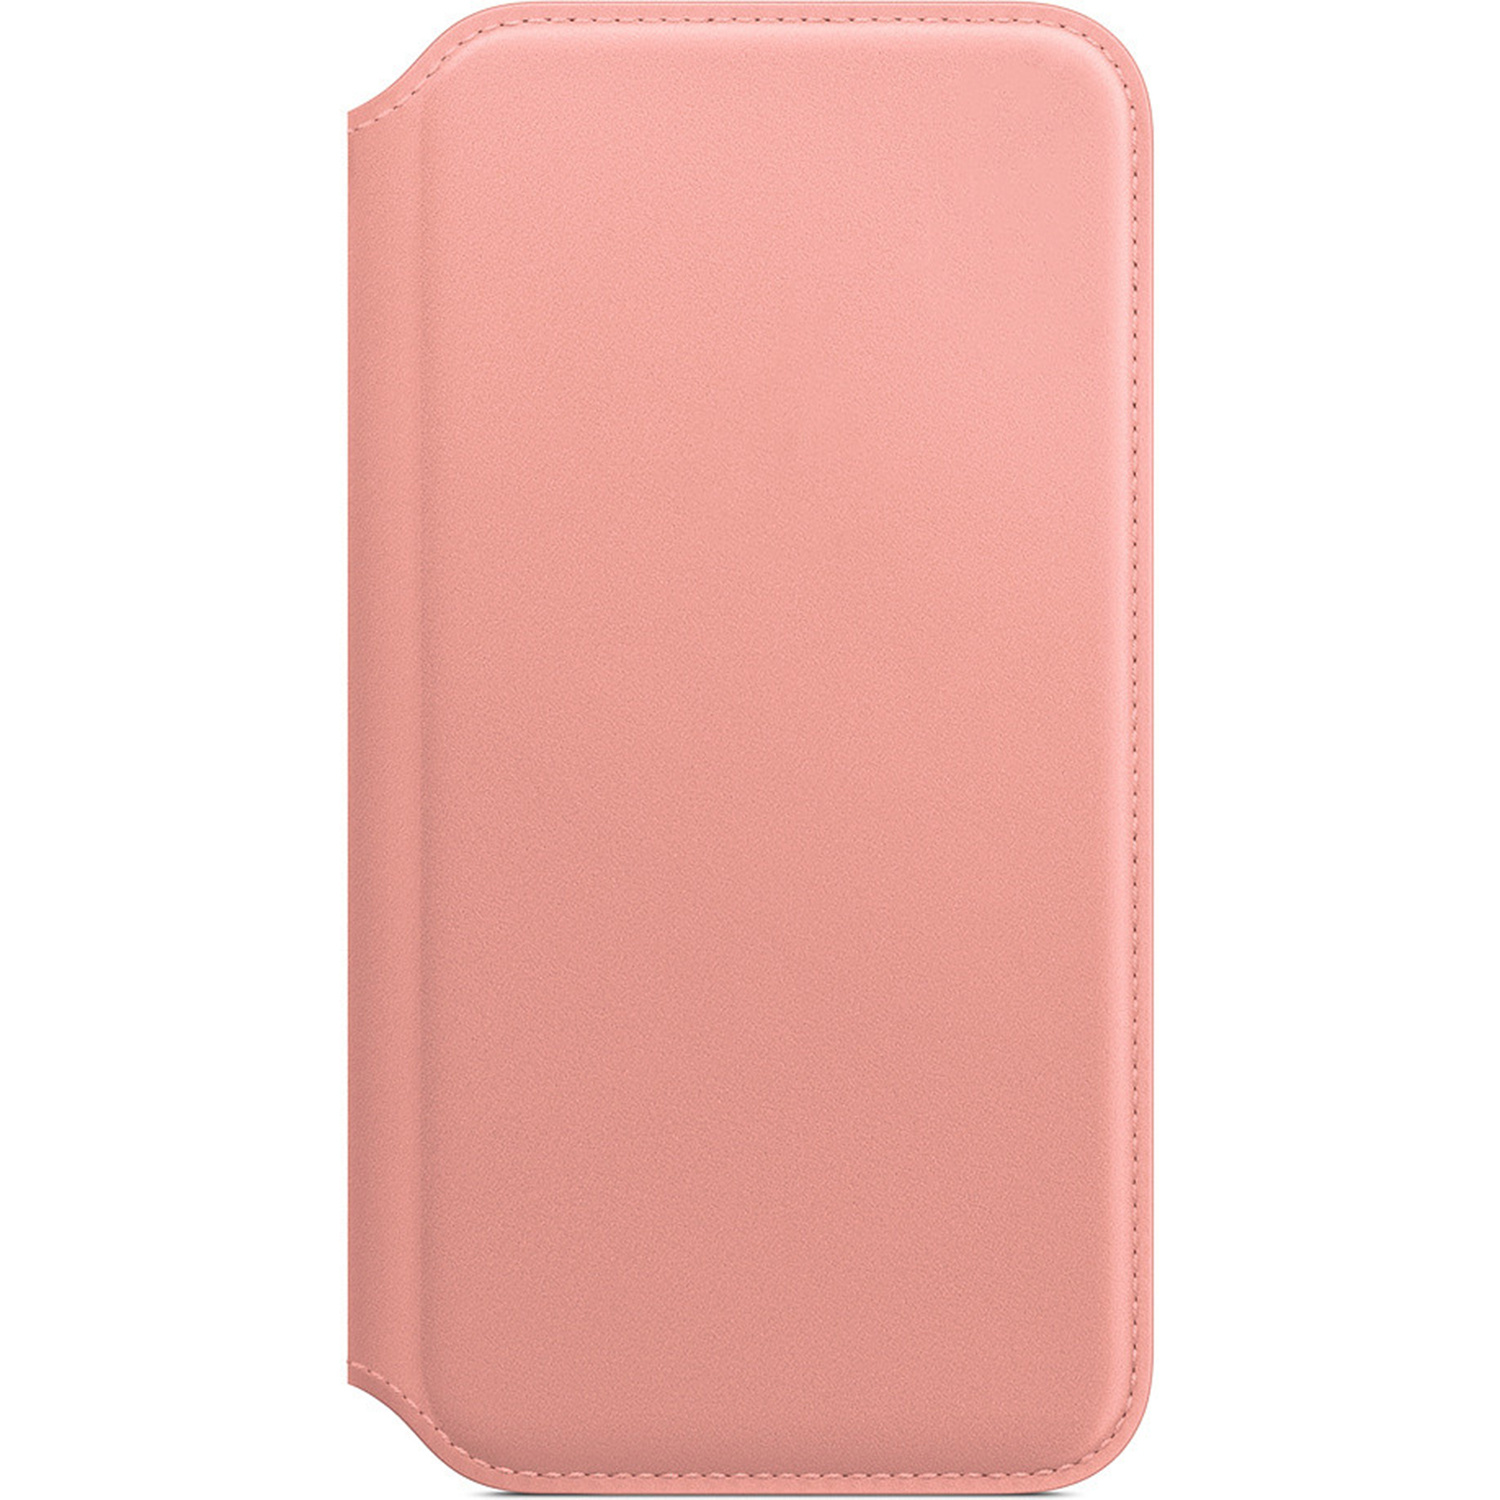 Apple Leather Folio Booktype iPhone X / Xs - Soft Pink